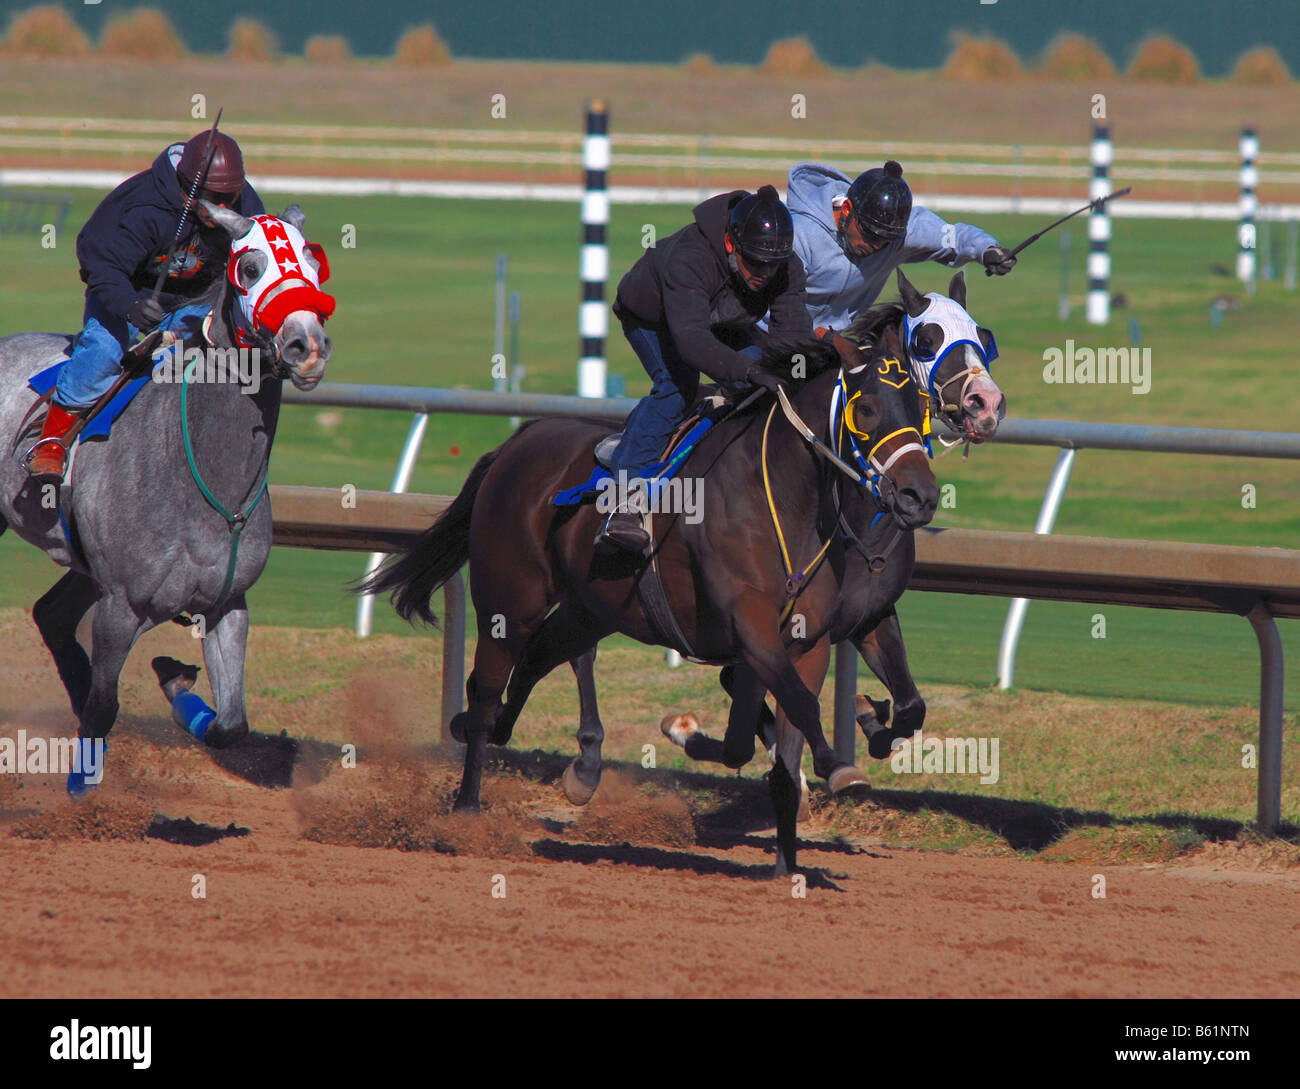 Horse racing at an American horse racing track - Stock Image